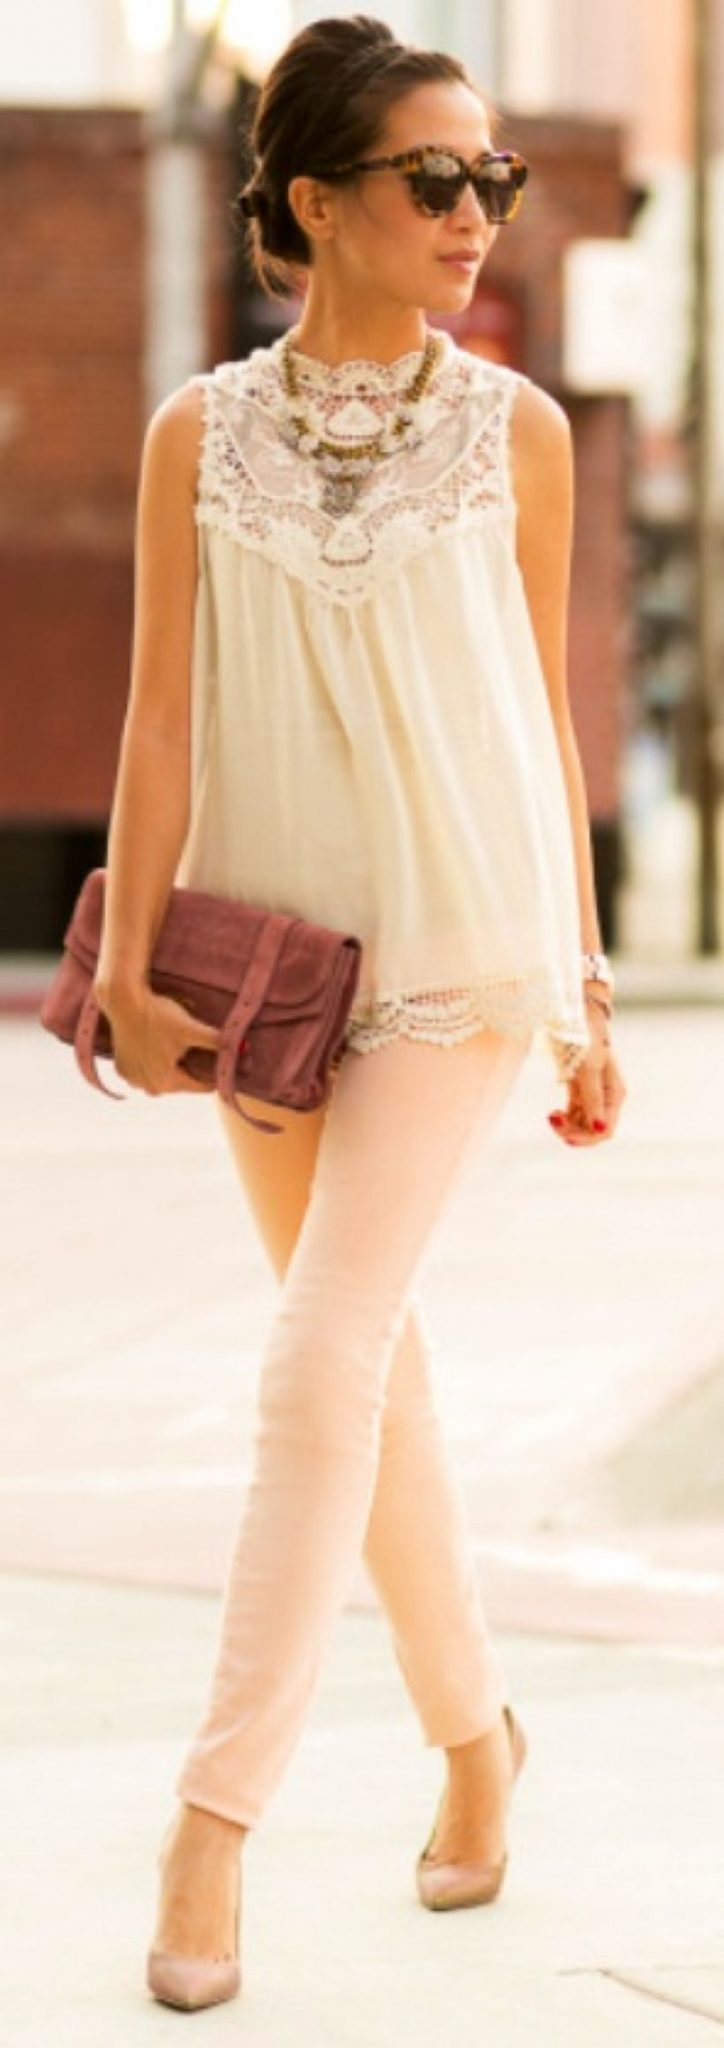 Vintage chic fashion outfits ideas 50